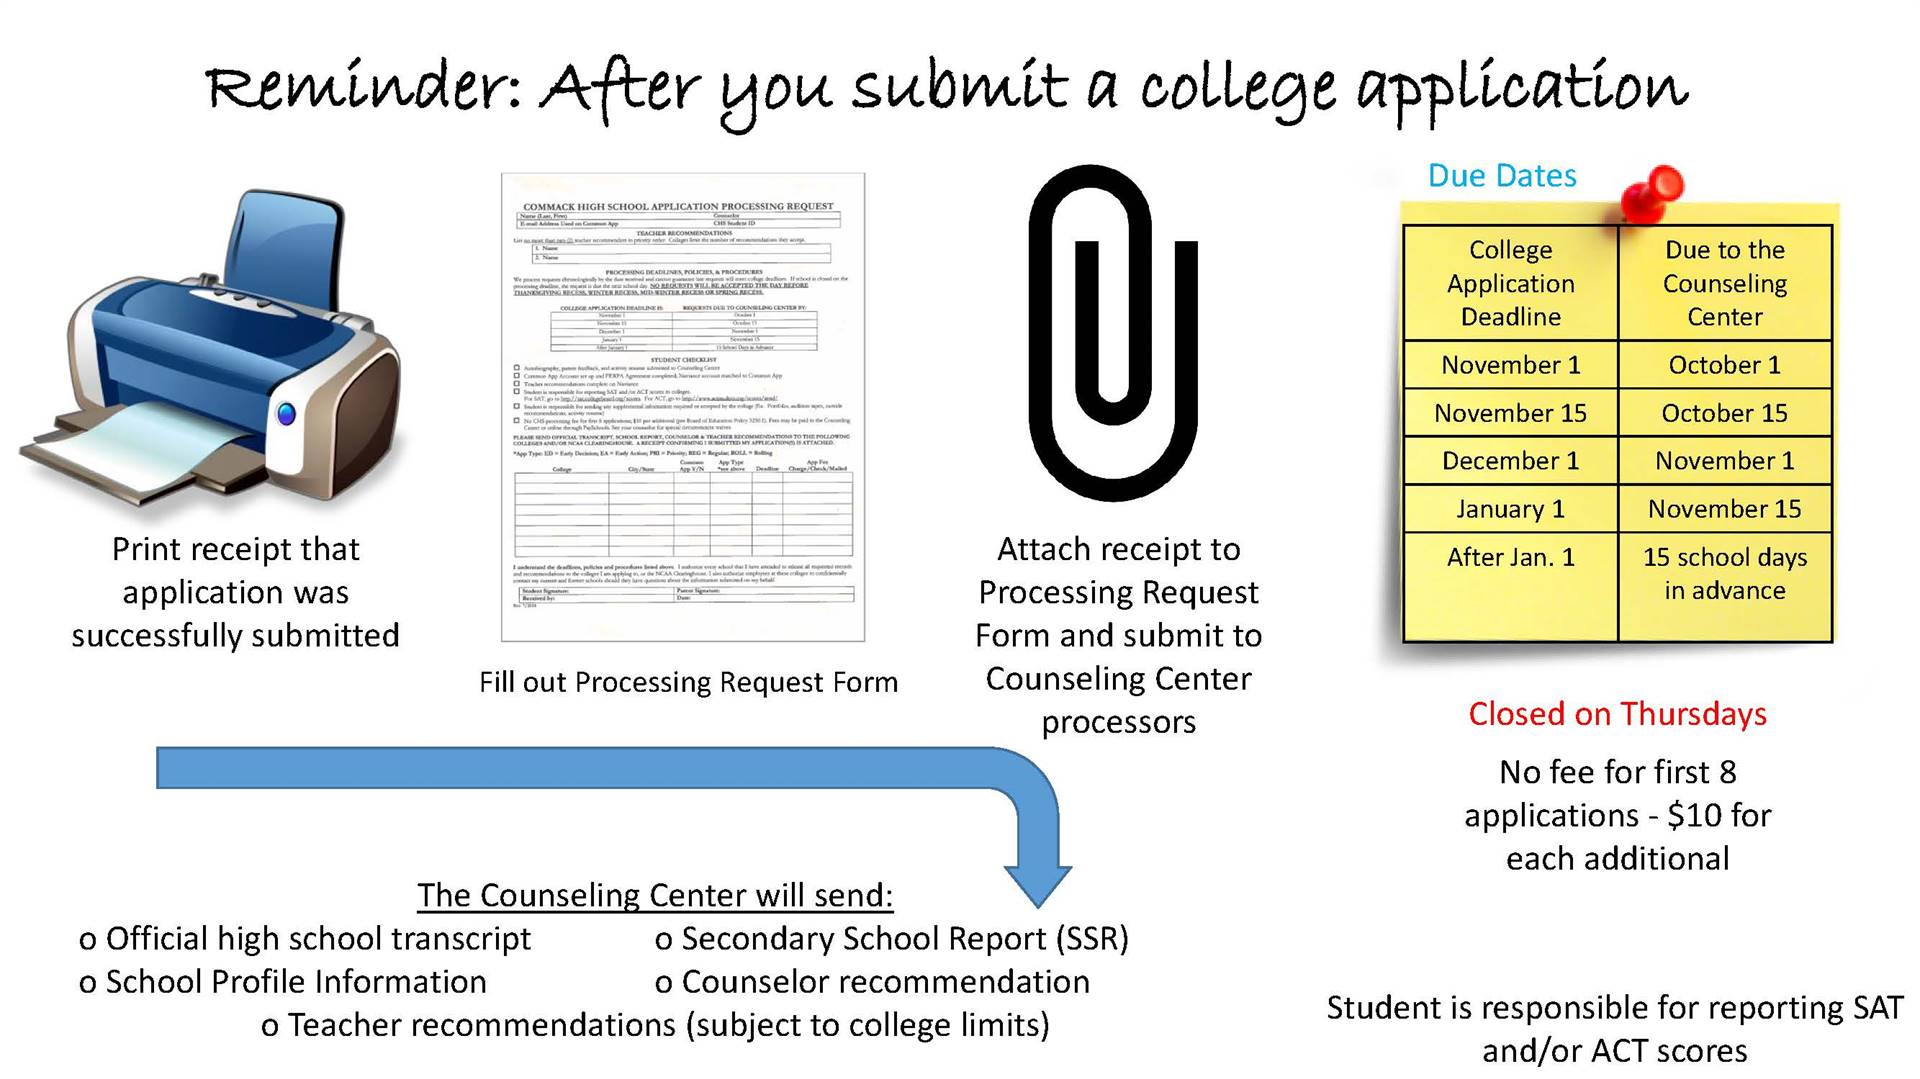 ferpa form queens college  College Application Processing